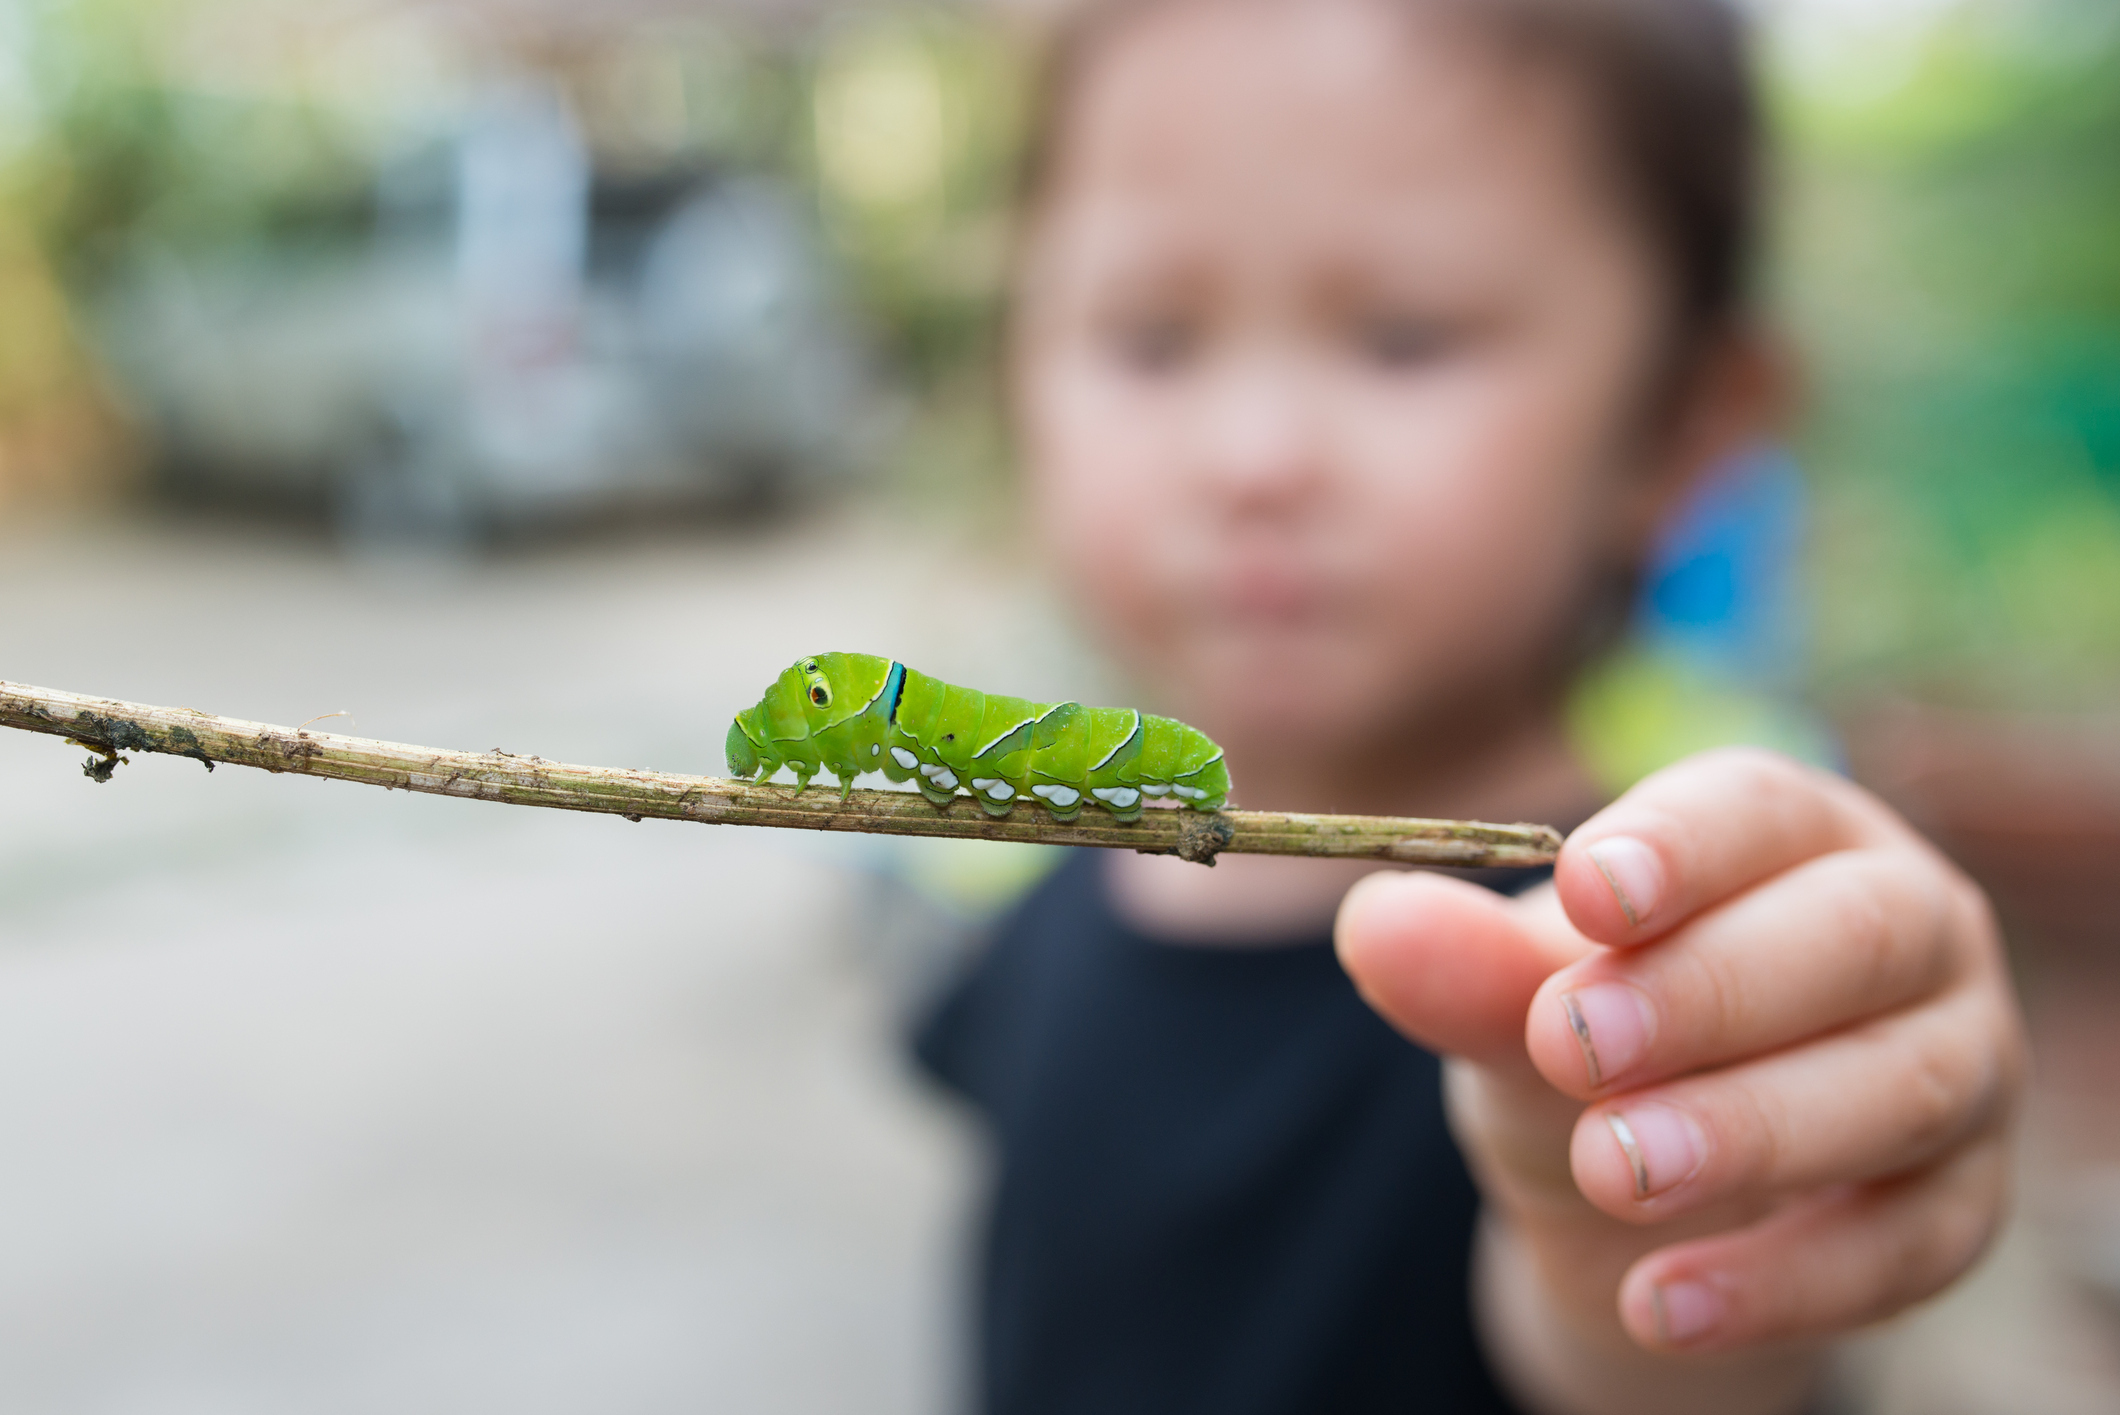 Little girl with a caterpillar